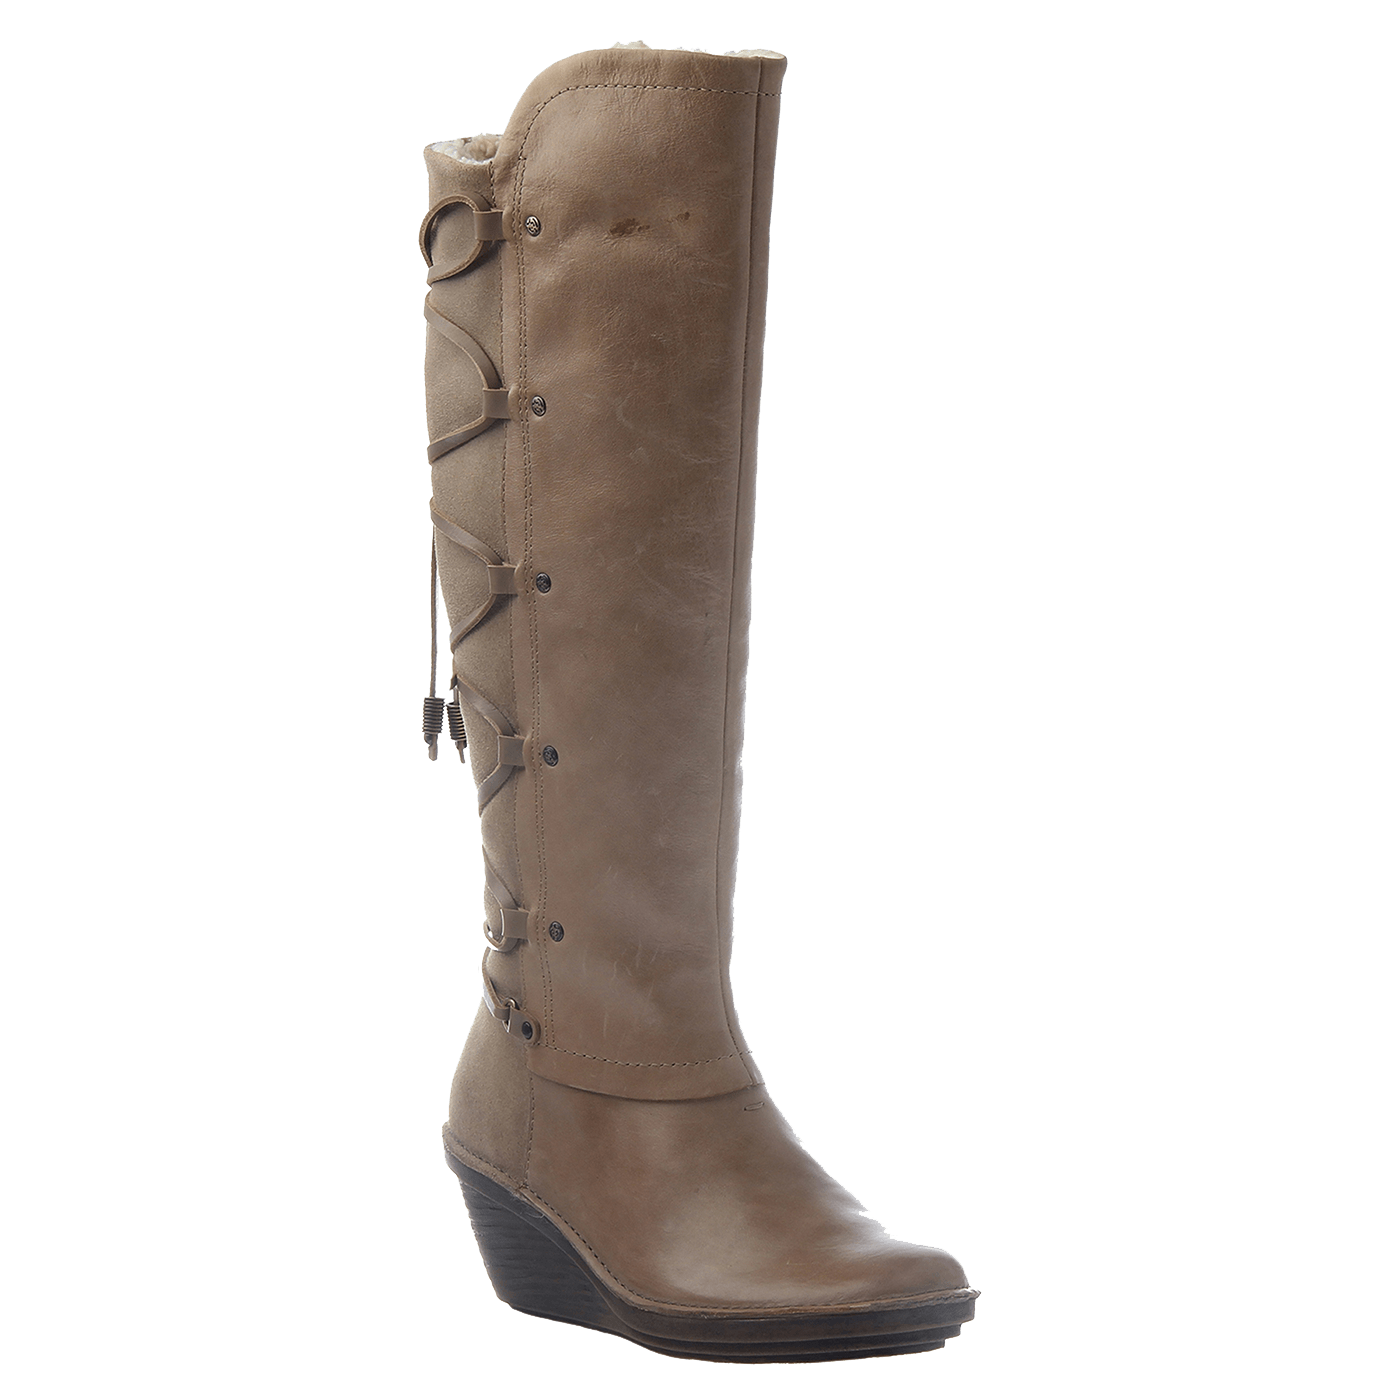 OTBT Abroad Boot DSLE21pry